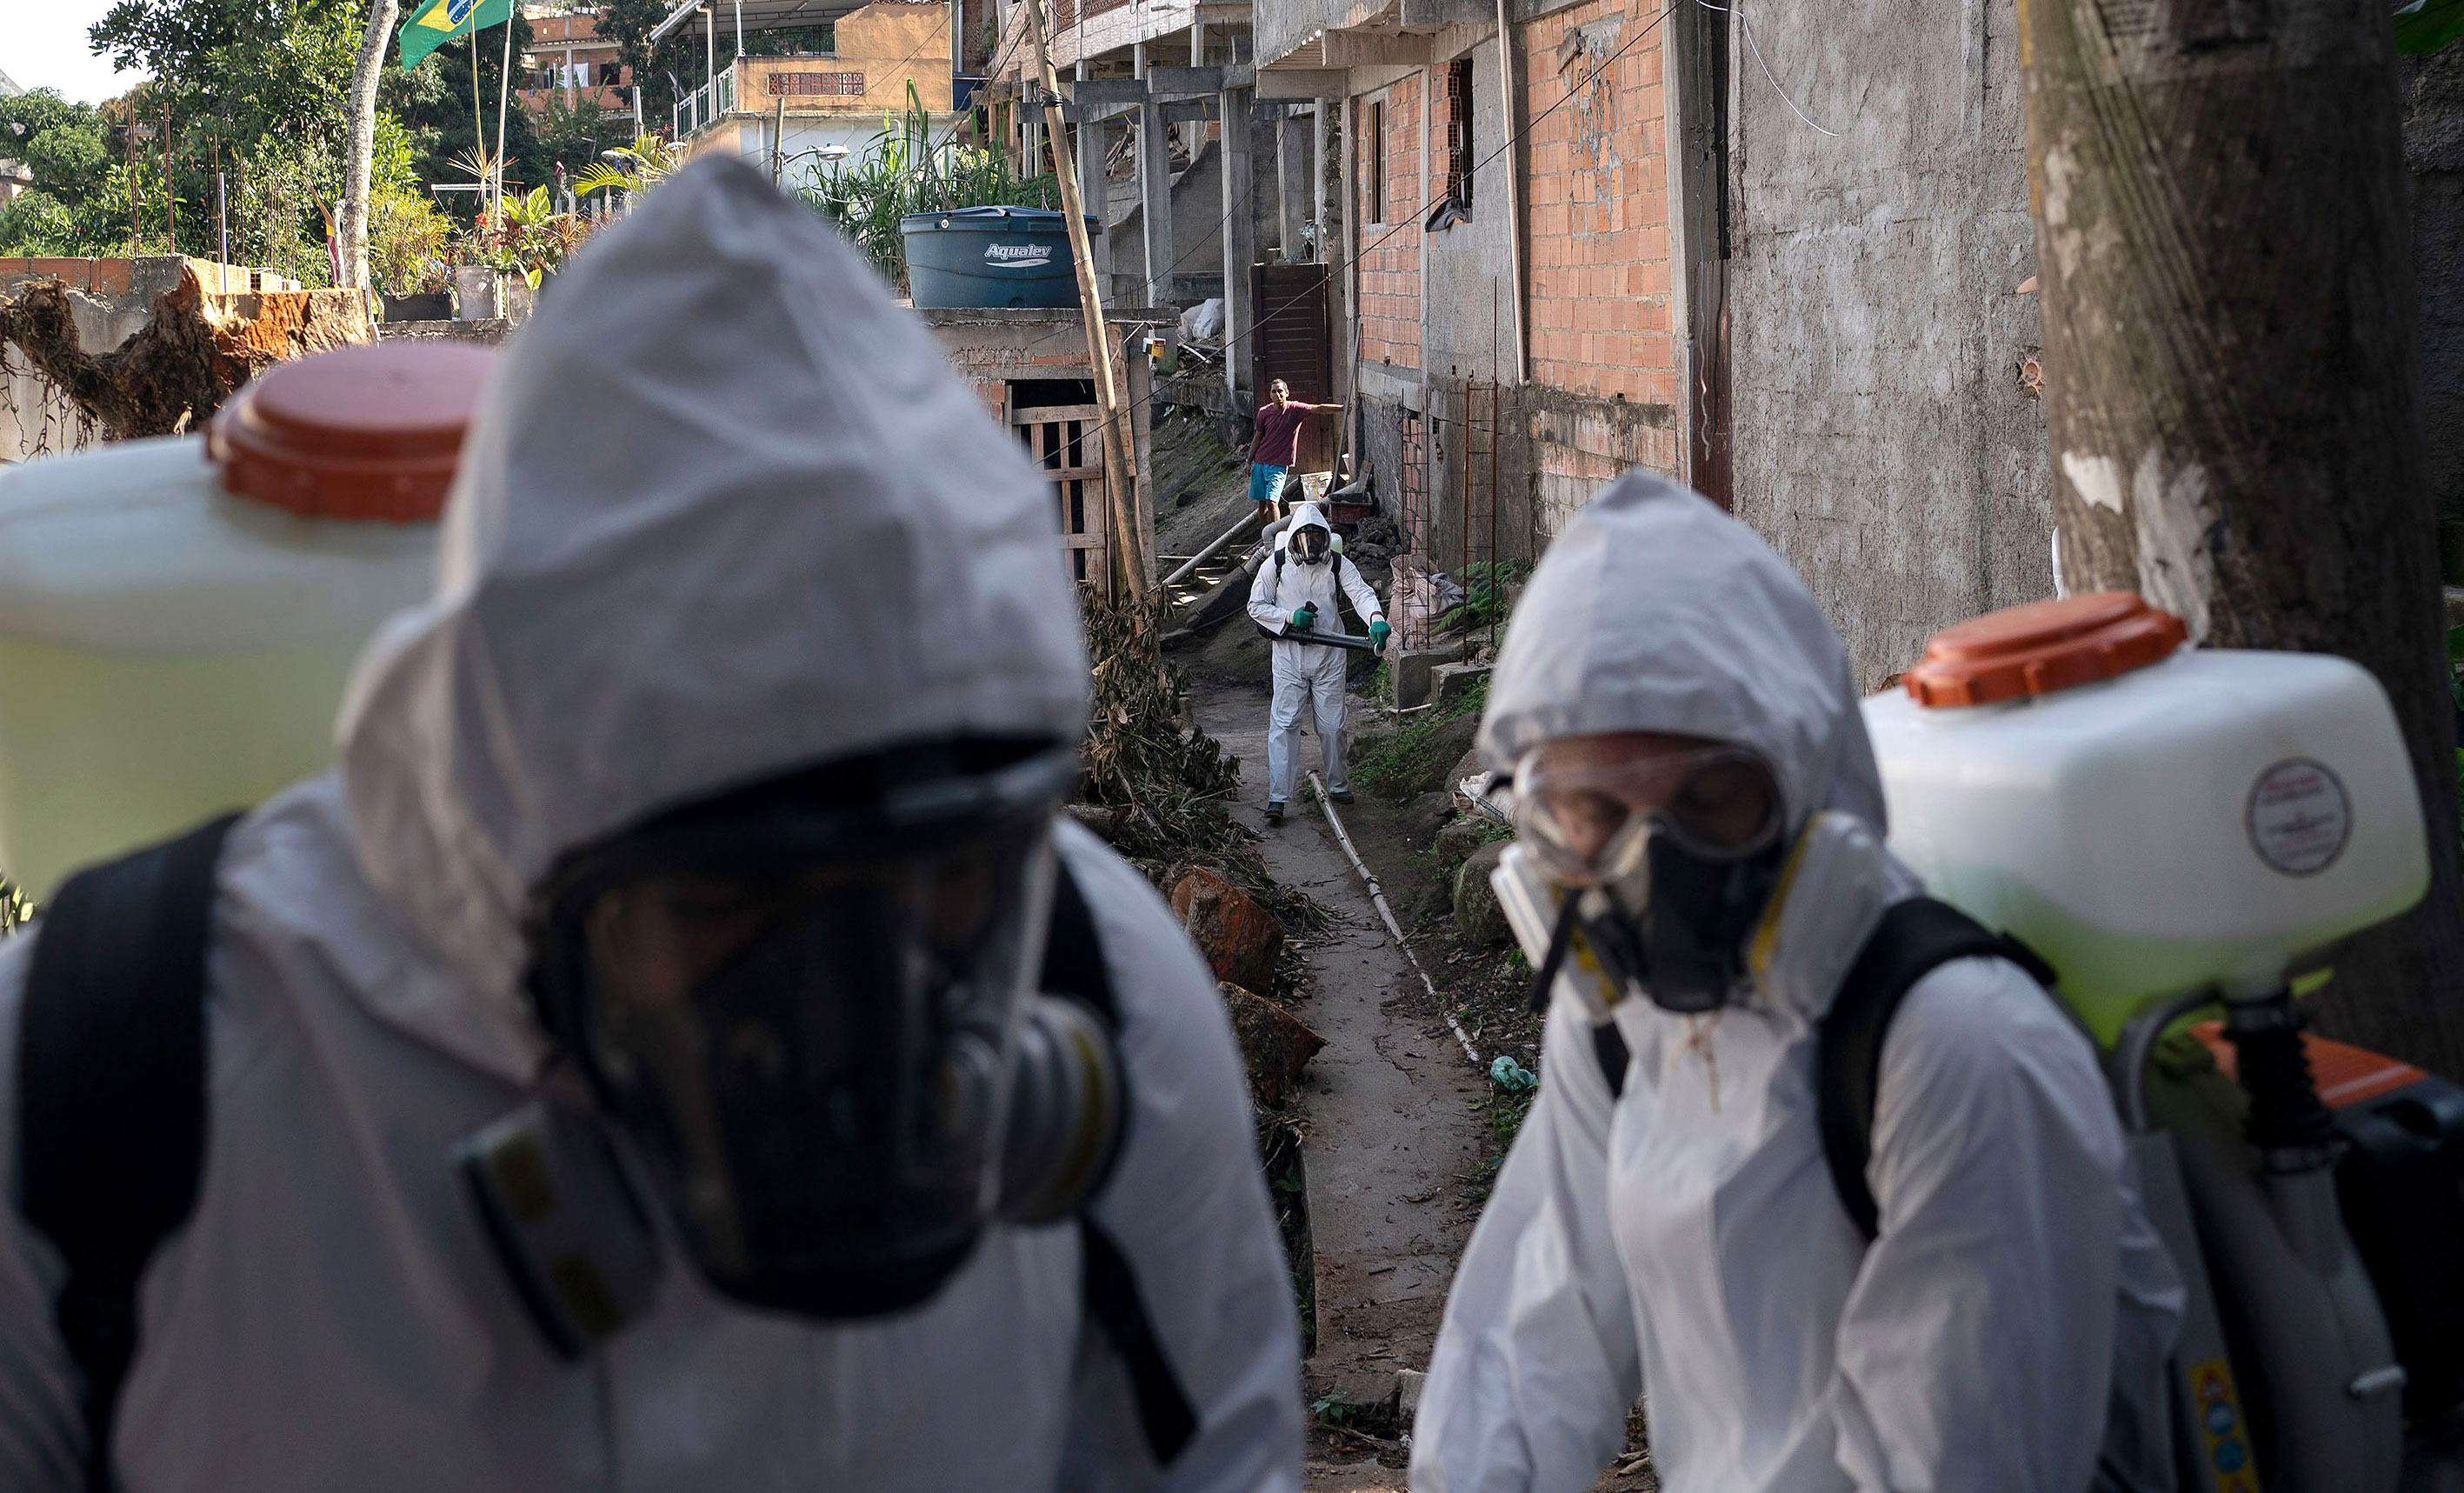 Volunteers spray disinfectant in an alleyway as a precaution against coronavirus on July 12 in Rio de Janeiro, Brazil.